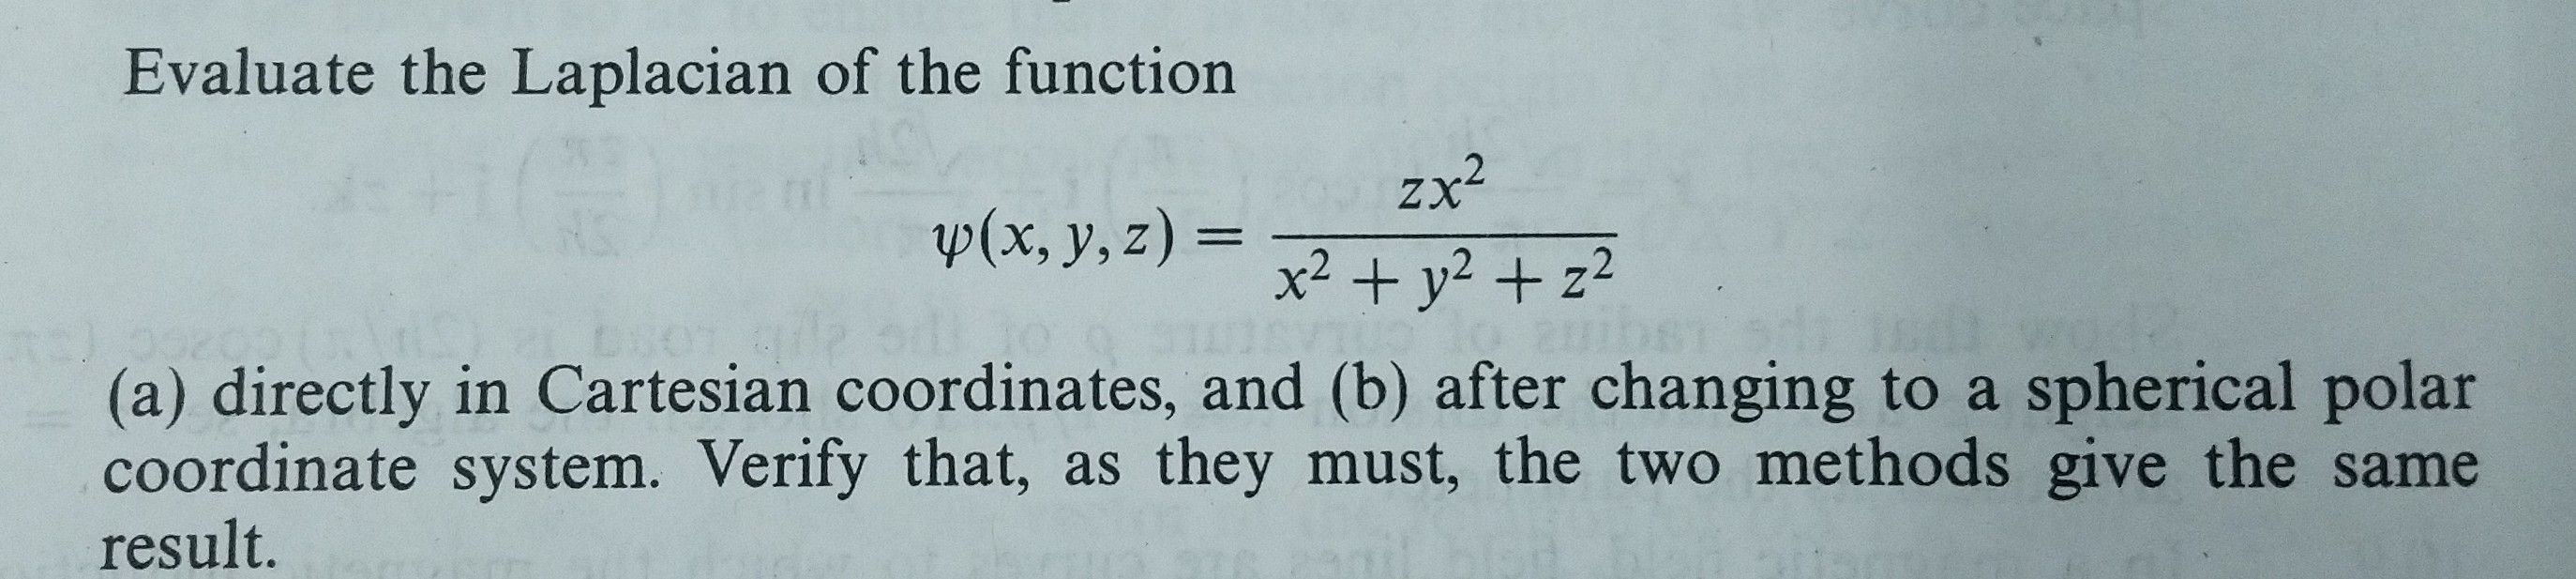 Evaluate the Laplacian of the function zx2 x2 + y2+ z2 p(x, y,z)- (a) directly in Cartesian coordinates, and (b) after changing to a spherical polar coordinate system. Verify that, as they must, the two methods give the same result.